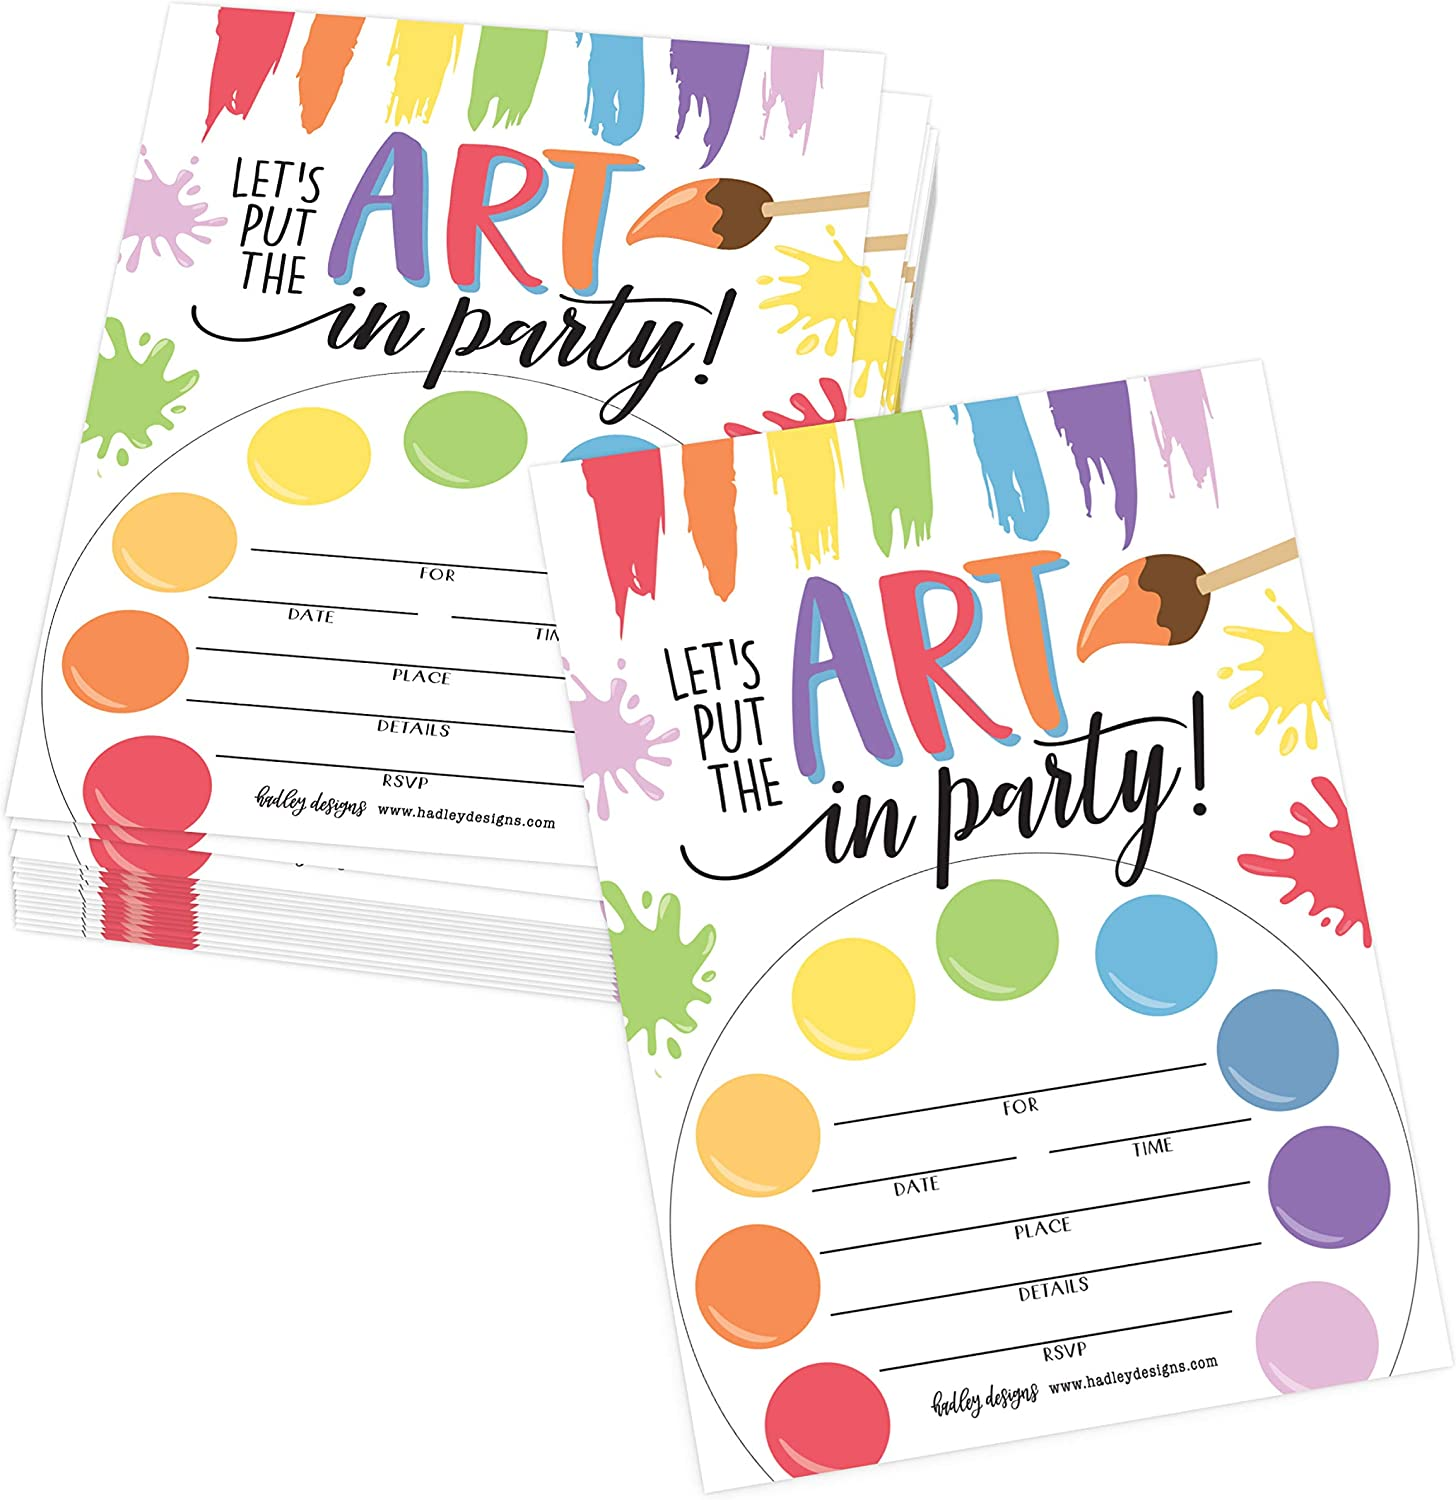 Amazon Com 25 Art Rainbow Paint Splatter Color Palette Kids Birthday Party Invitations Bright Colorful Painting Craft Themed Bday Invite Ideas Creative Artist Girls Boys Adult Supplies Printable Template Health Personal Care